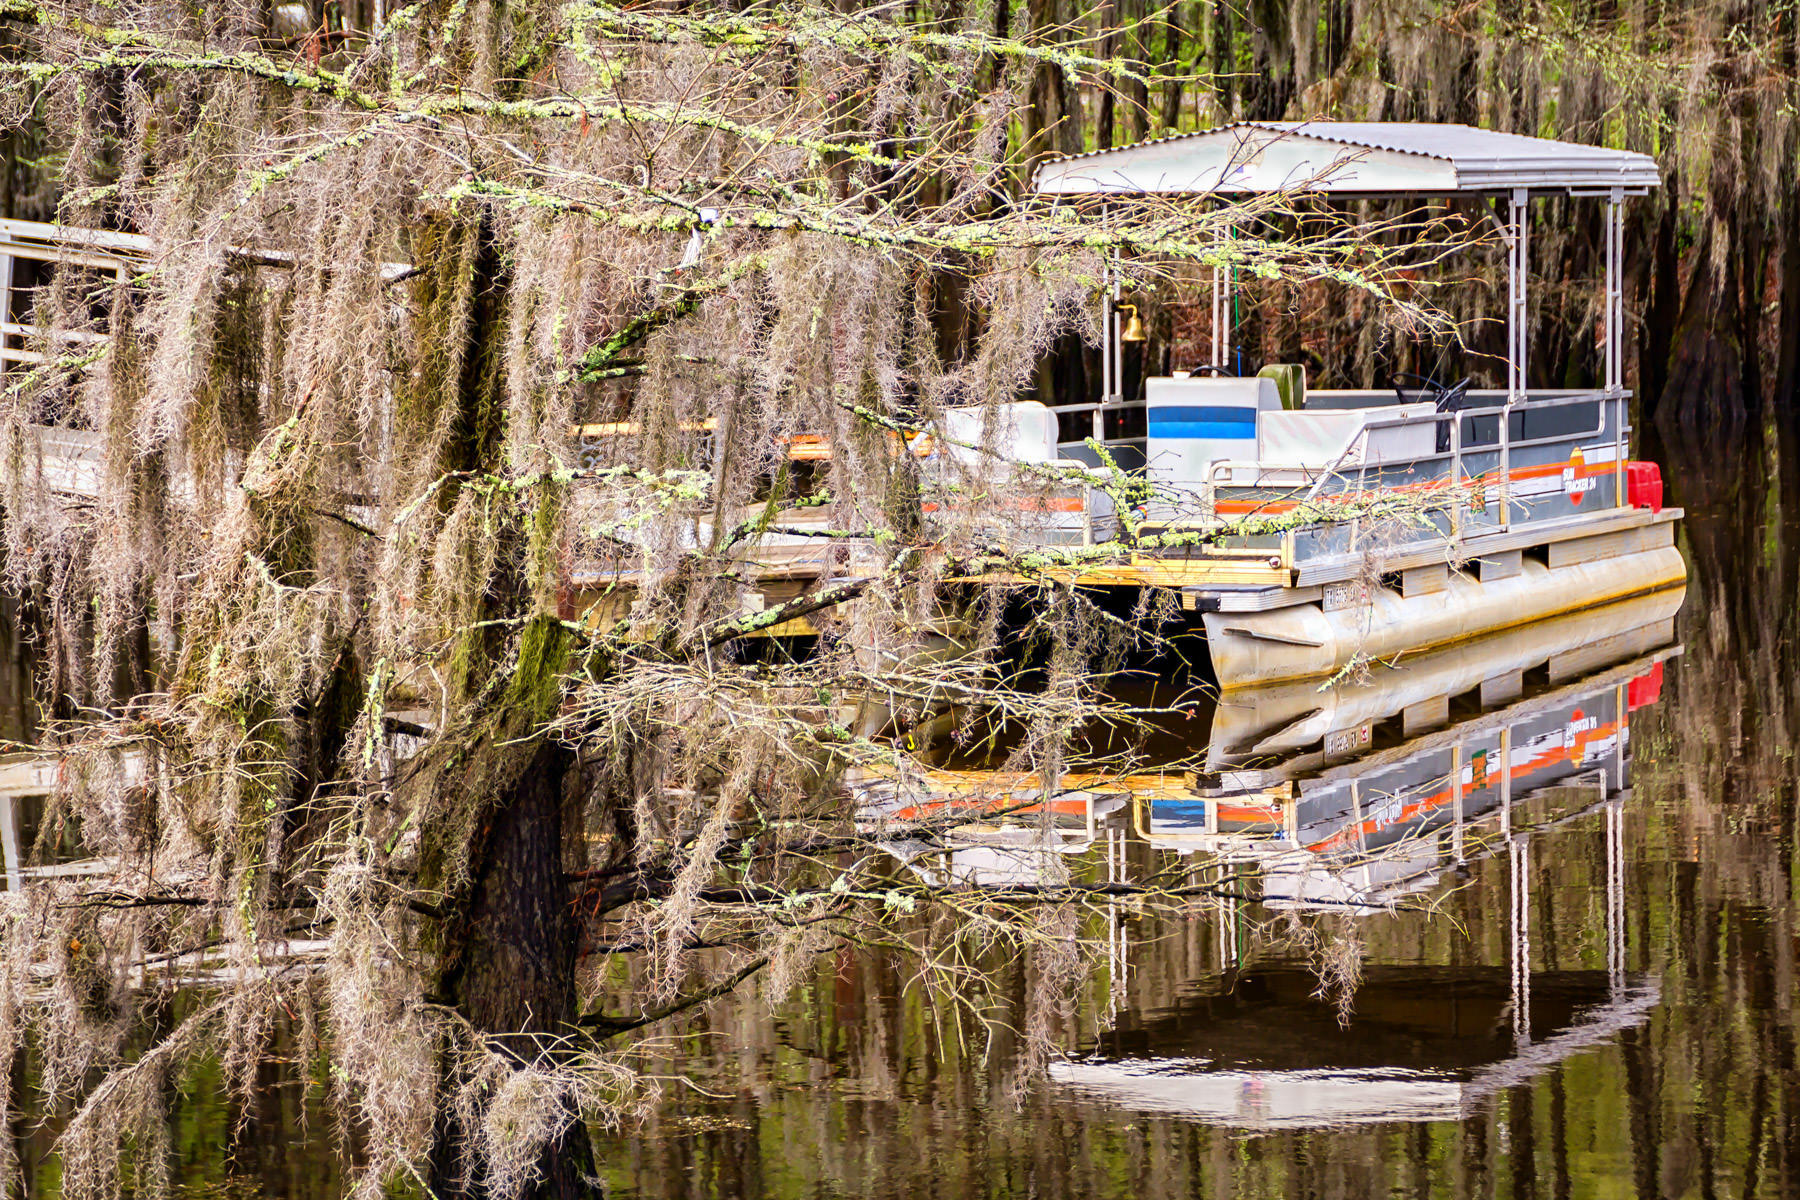 A pontoon boat floats amongst the Spanish moss-covered cypress trees of Texas' Caddo Lake.